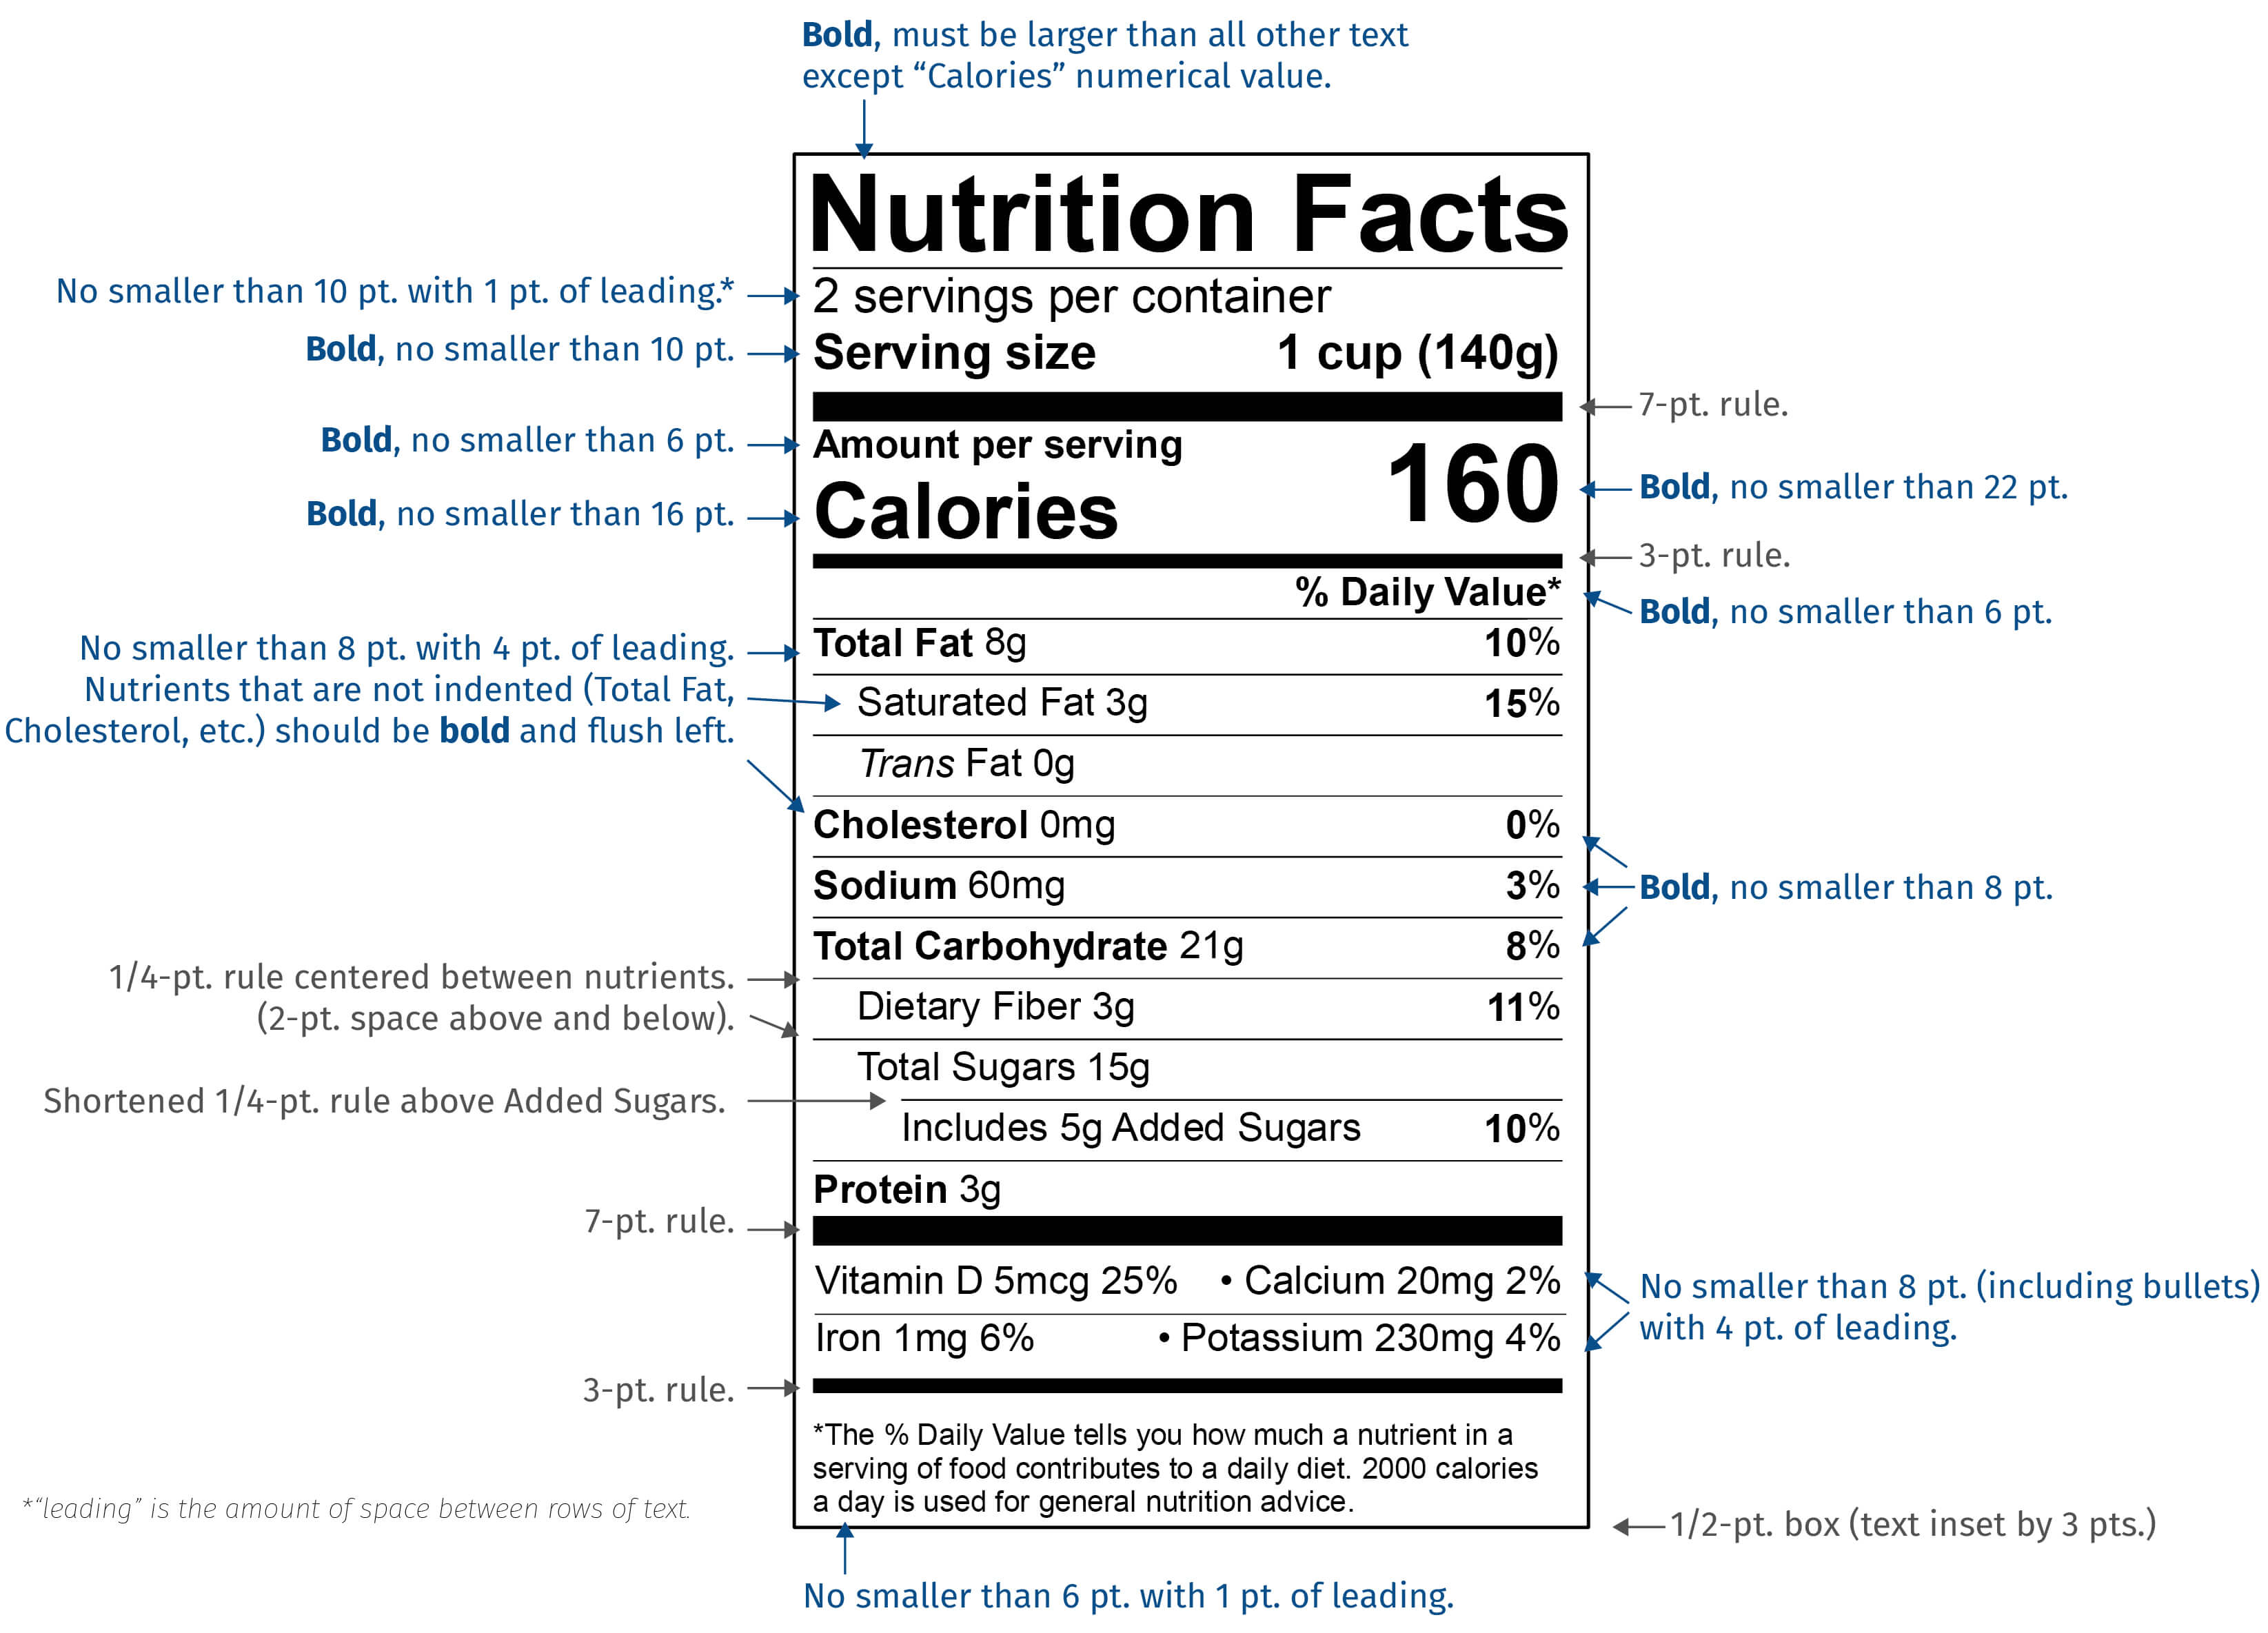 New Fda Nutrition Facts Label Font Style And Size | Esha intended for Nutrition Label Template Word